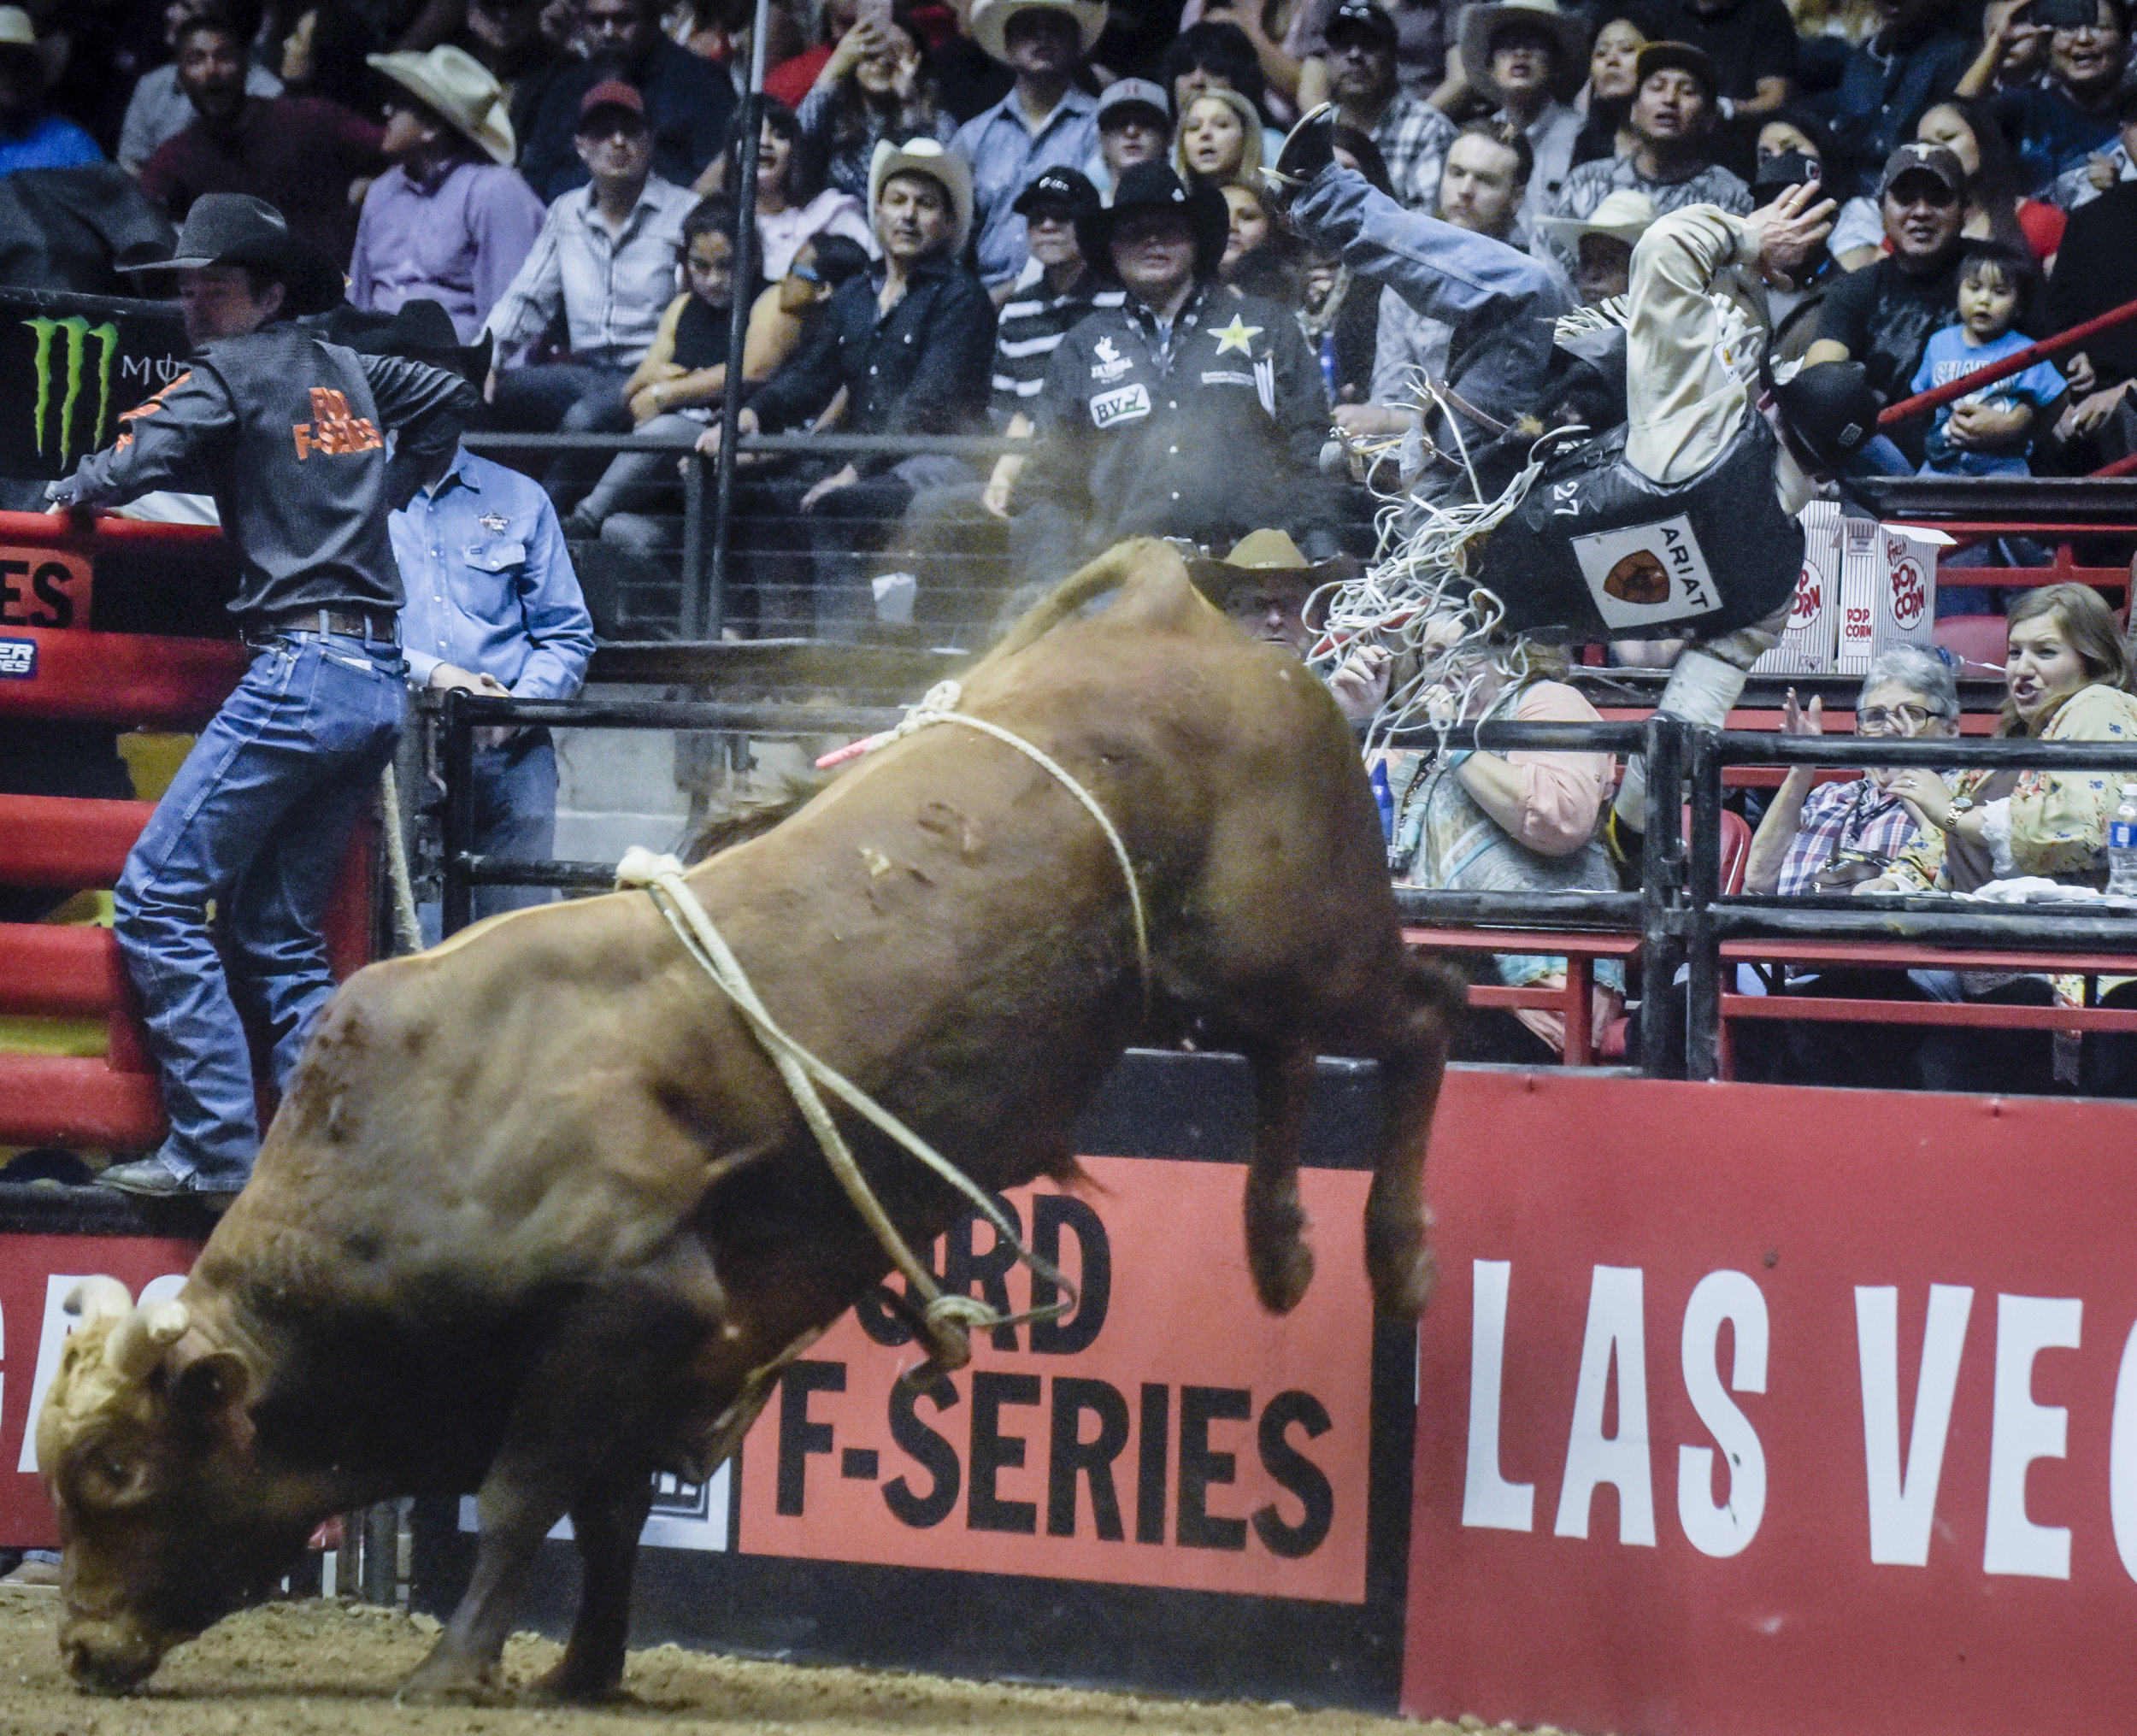 Marco Antonio Eguchi gets thrown to the first row and over the railing by the bull named Too Smooth on the second day of competition in the Ty Murray Invitational PBR event Friday evening at the Pit.  Eguchi was able to walk away with the help of a medical team.